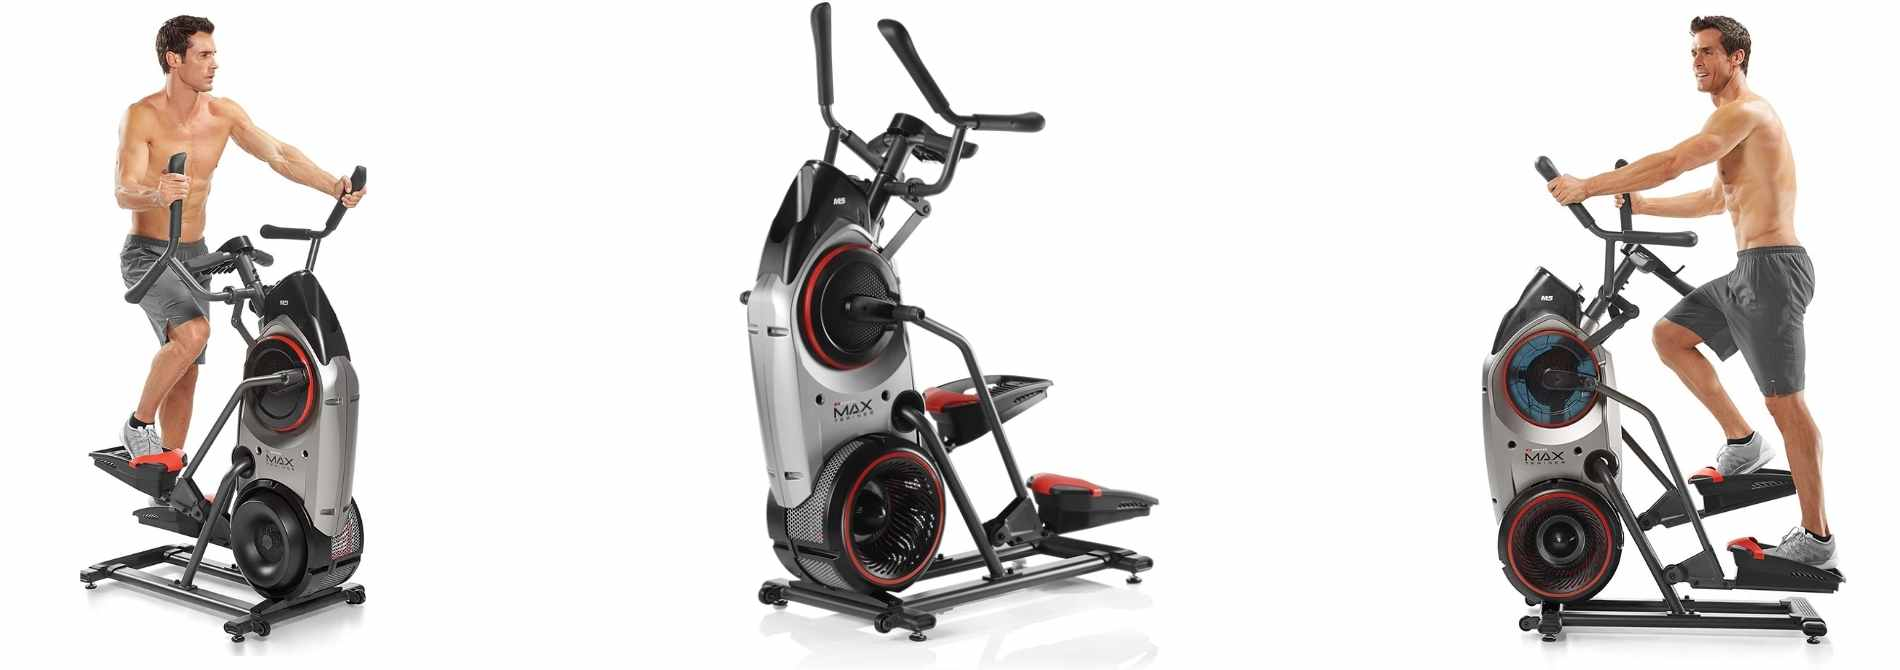 Bowflex Max Trainer 5 Overview